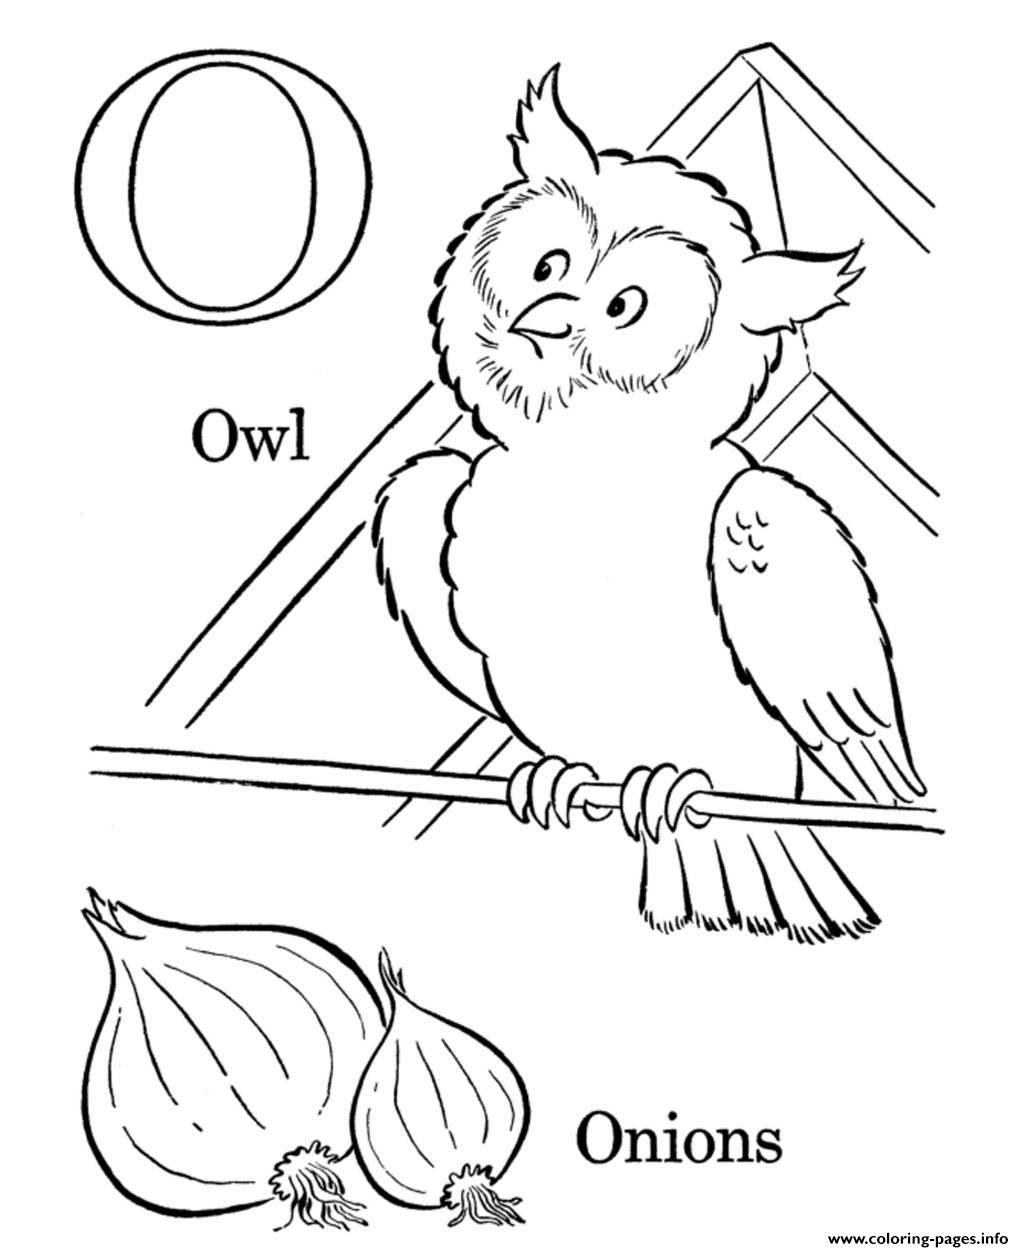 Onions And Owl Alphabet S3989 Coloring Pages Printable